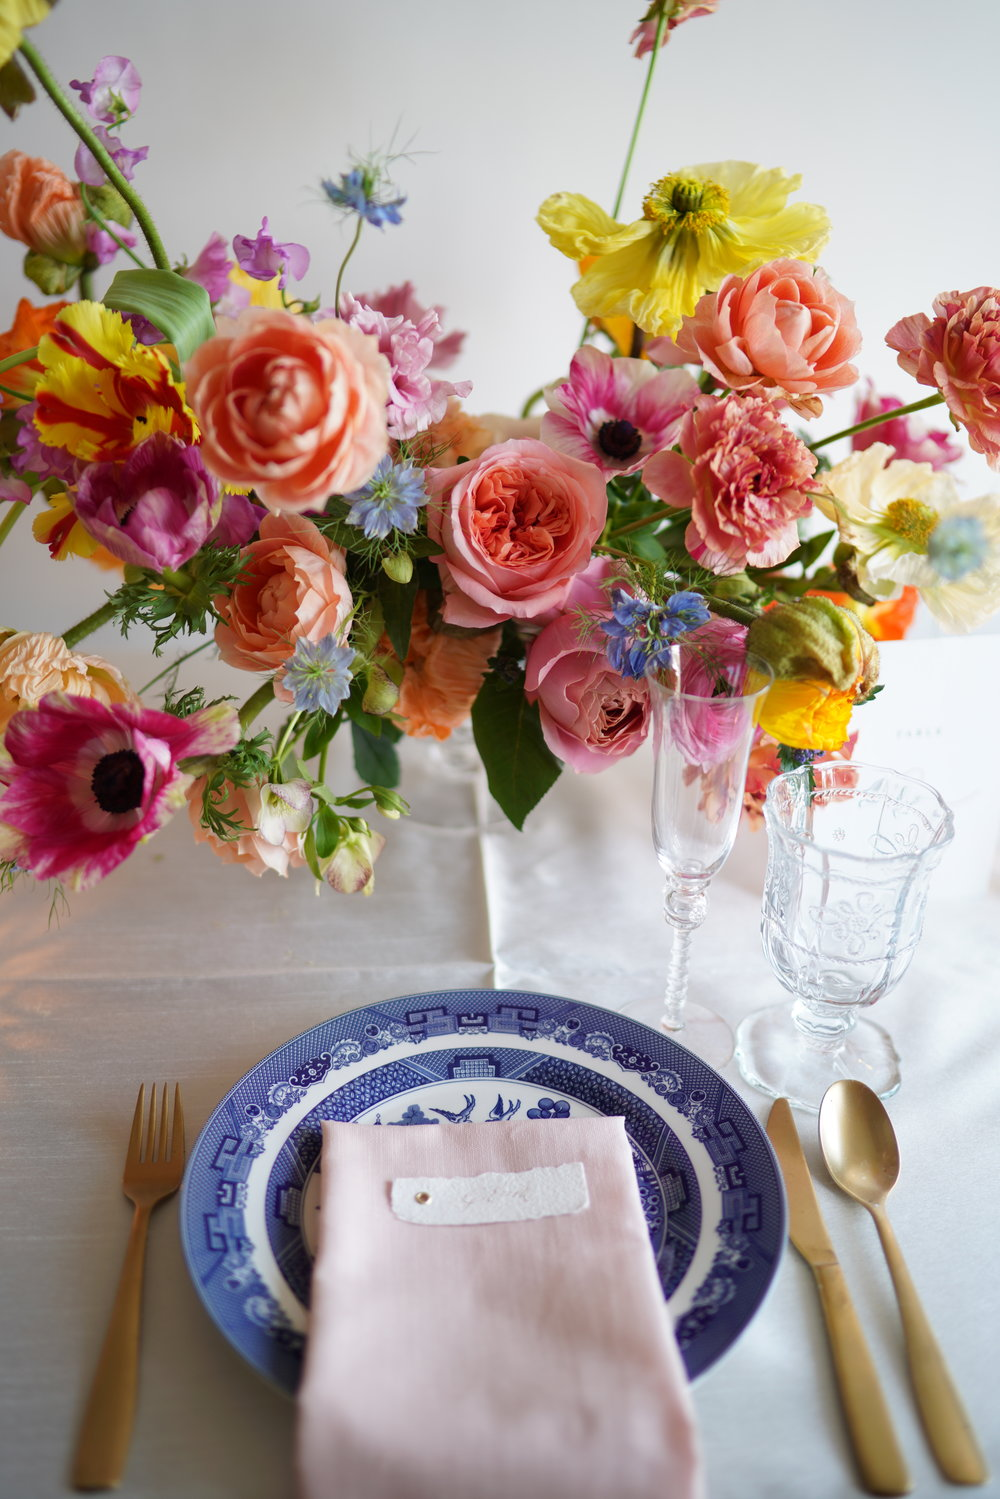 Bright spring garden style floral arrangement paired with blue and white chinoiserie china. An elegant spring tablescape. Flowers and styling by Maxit Flower Design